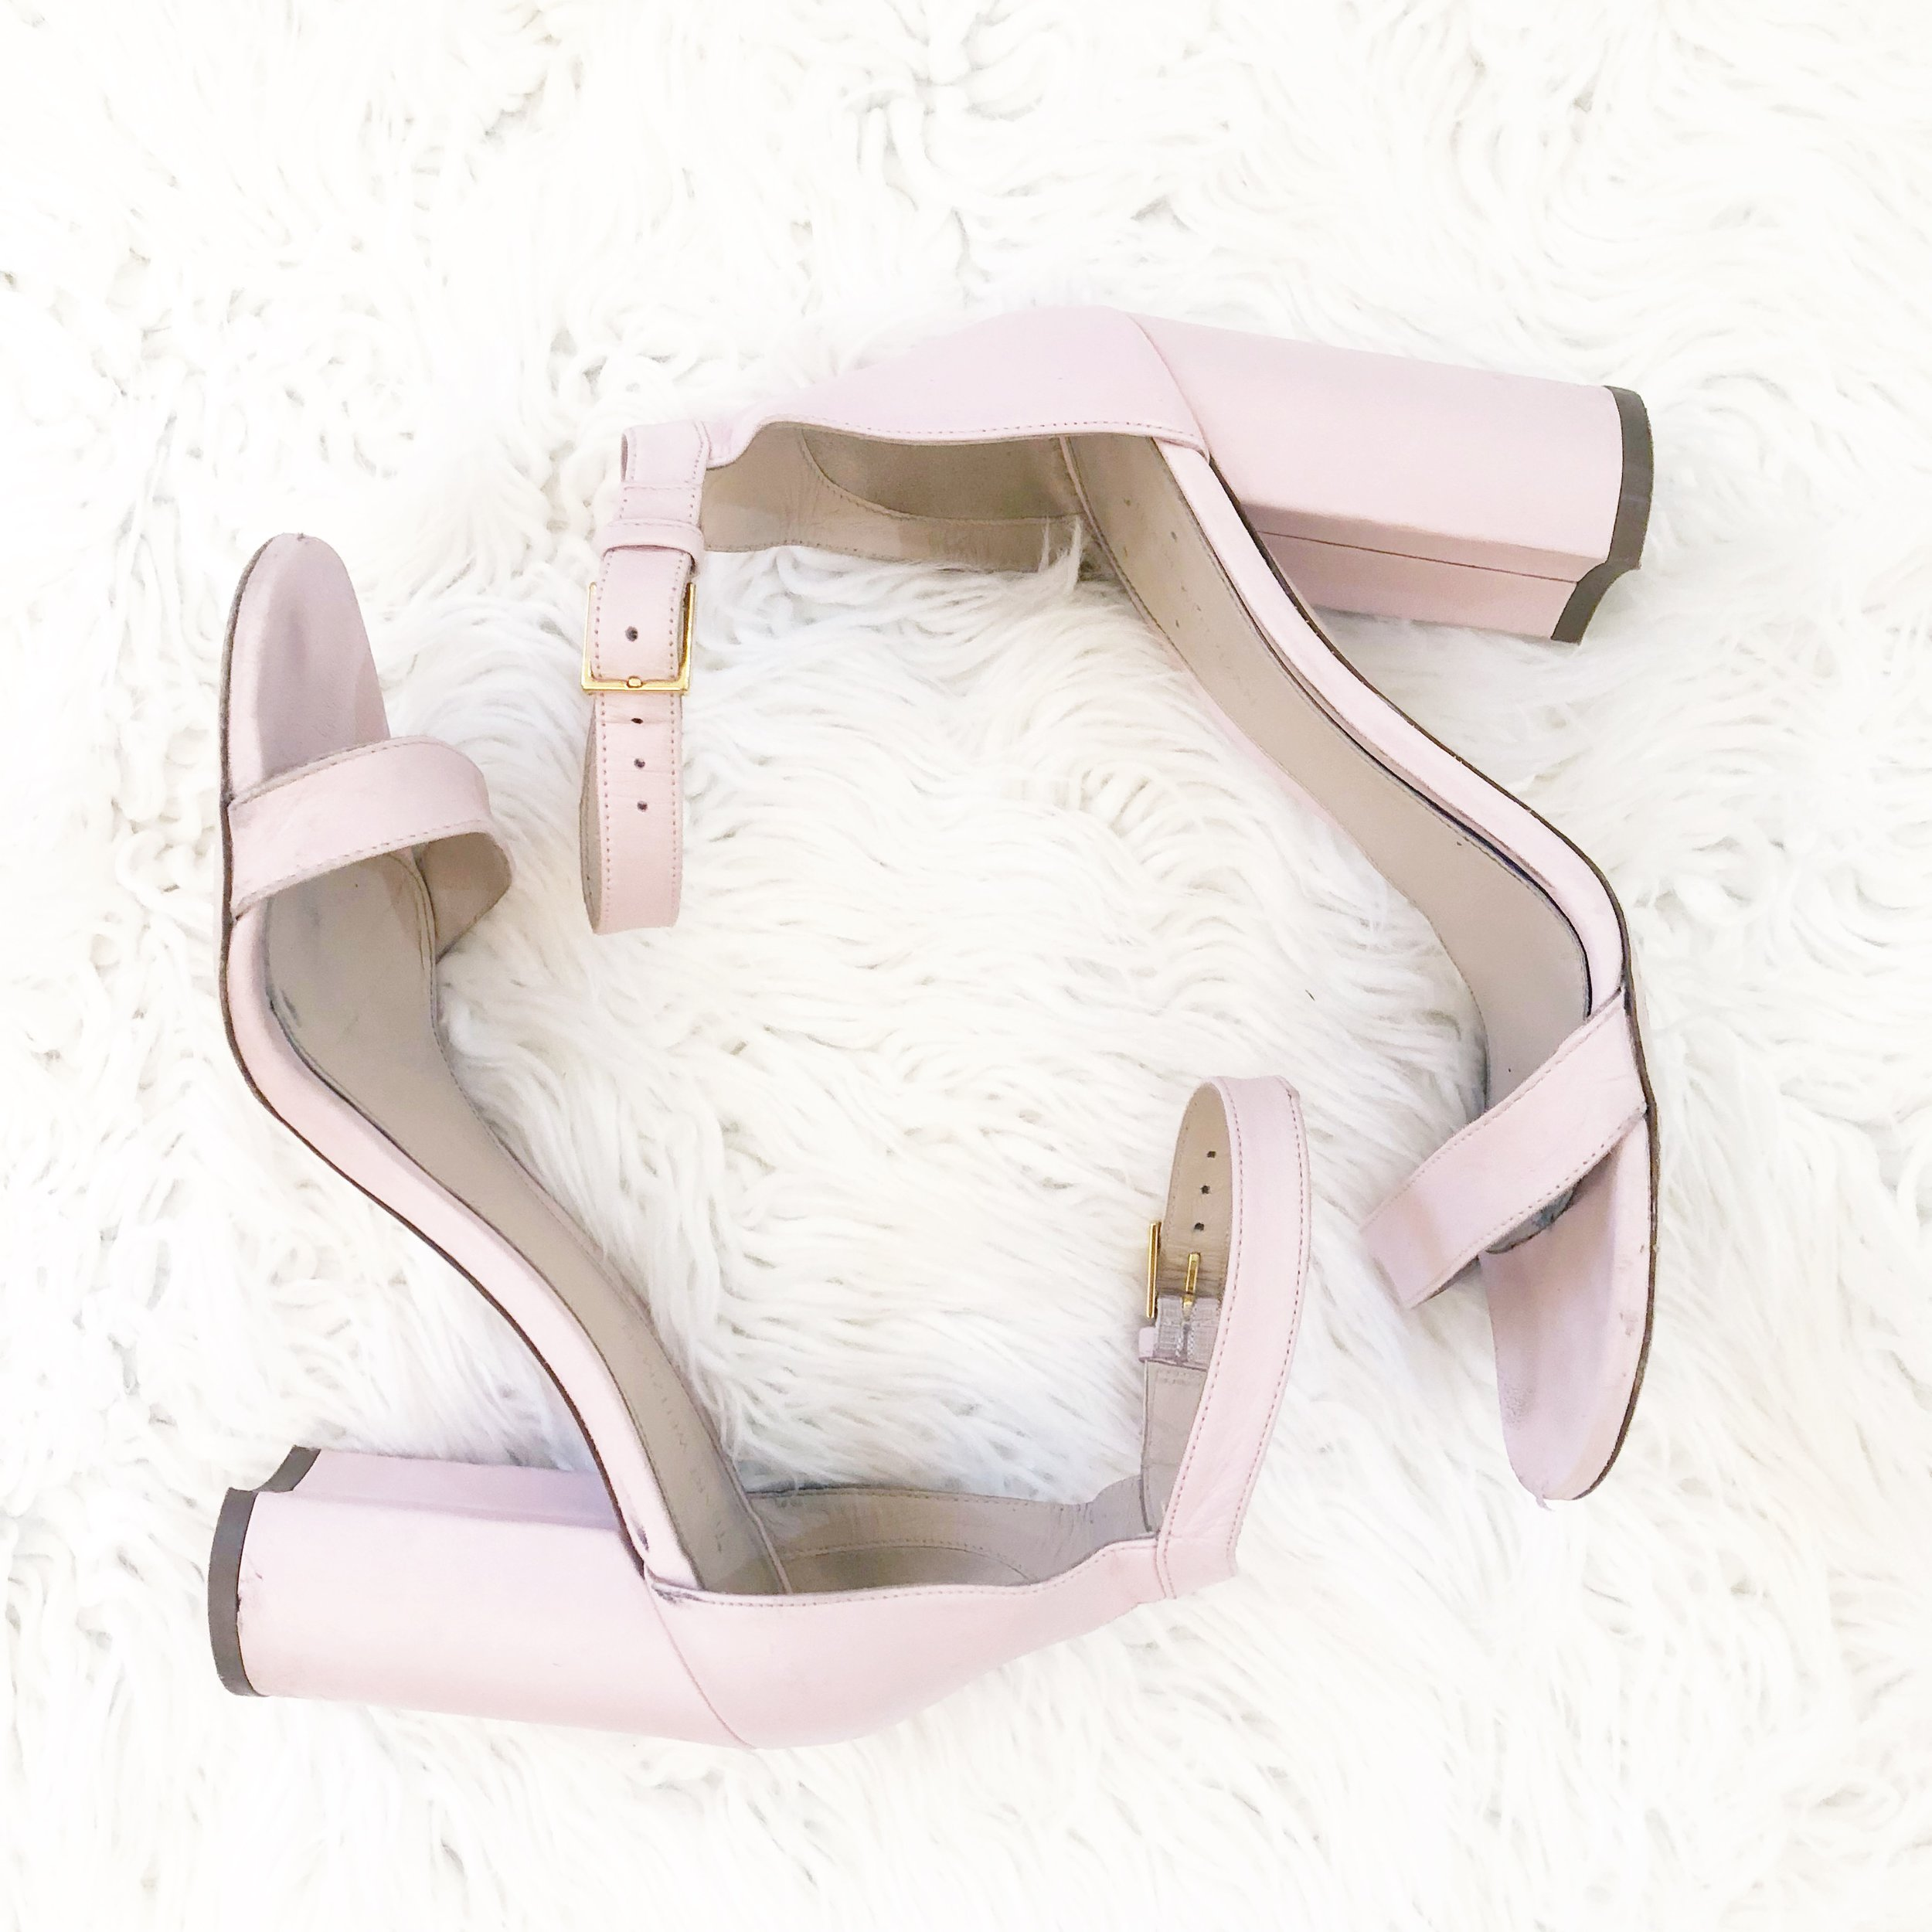 STUART WEITZMAN - My fancy sandal that goes with every look. I wear it with anything from a t-shirt and jeans to a maxi dress! Feminine and chic, I will always think of any shoe by Stuart Weitzman as iconic and classic!